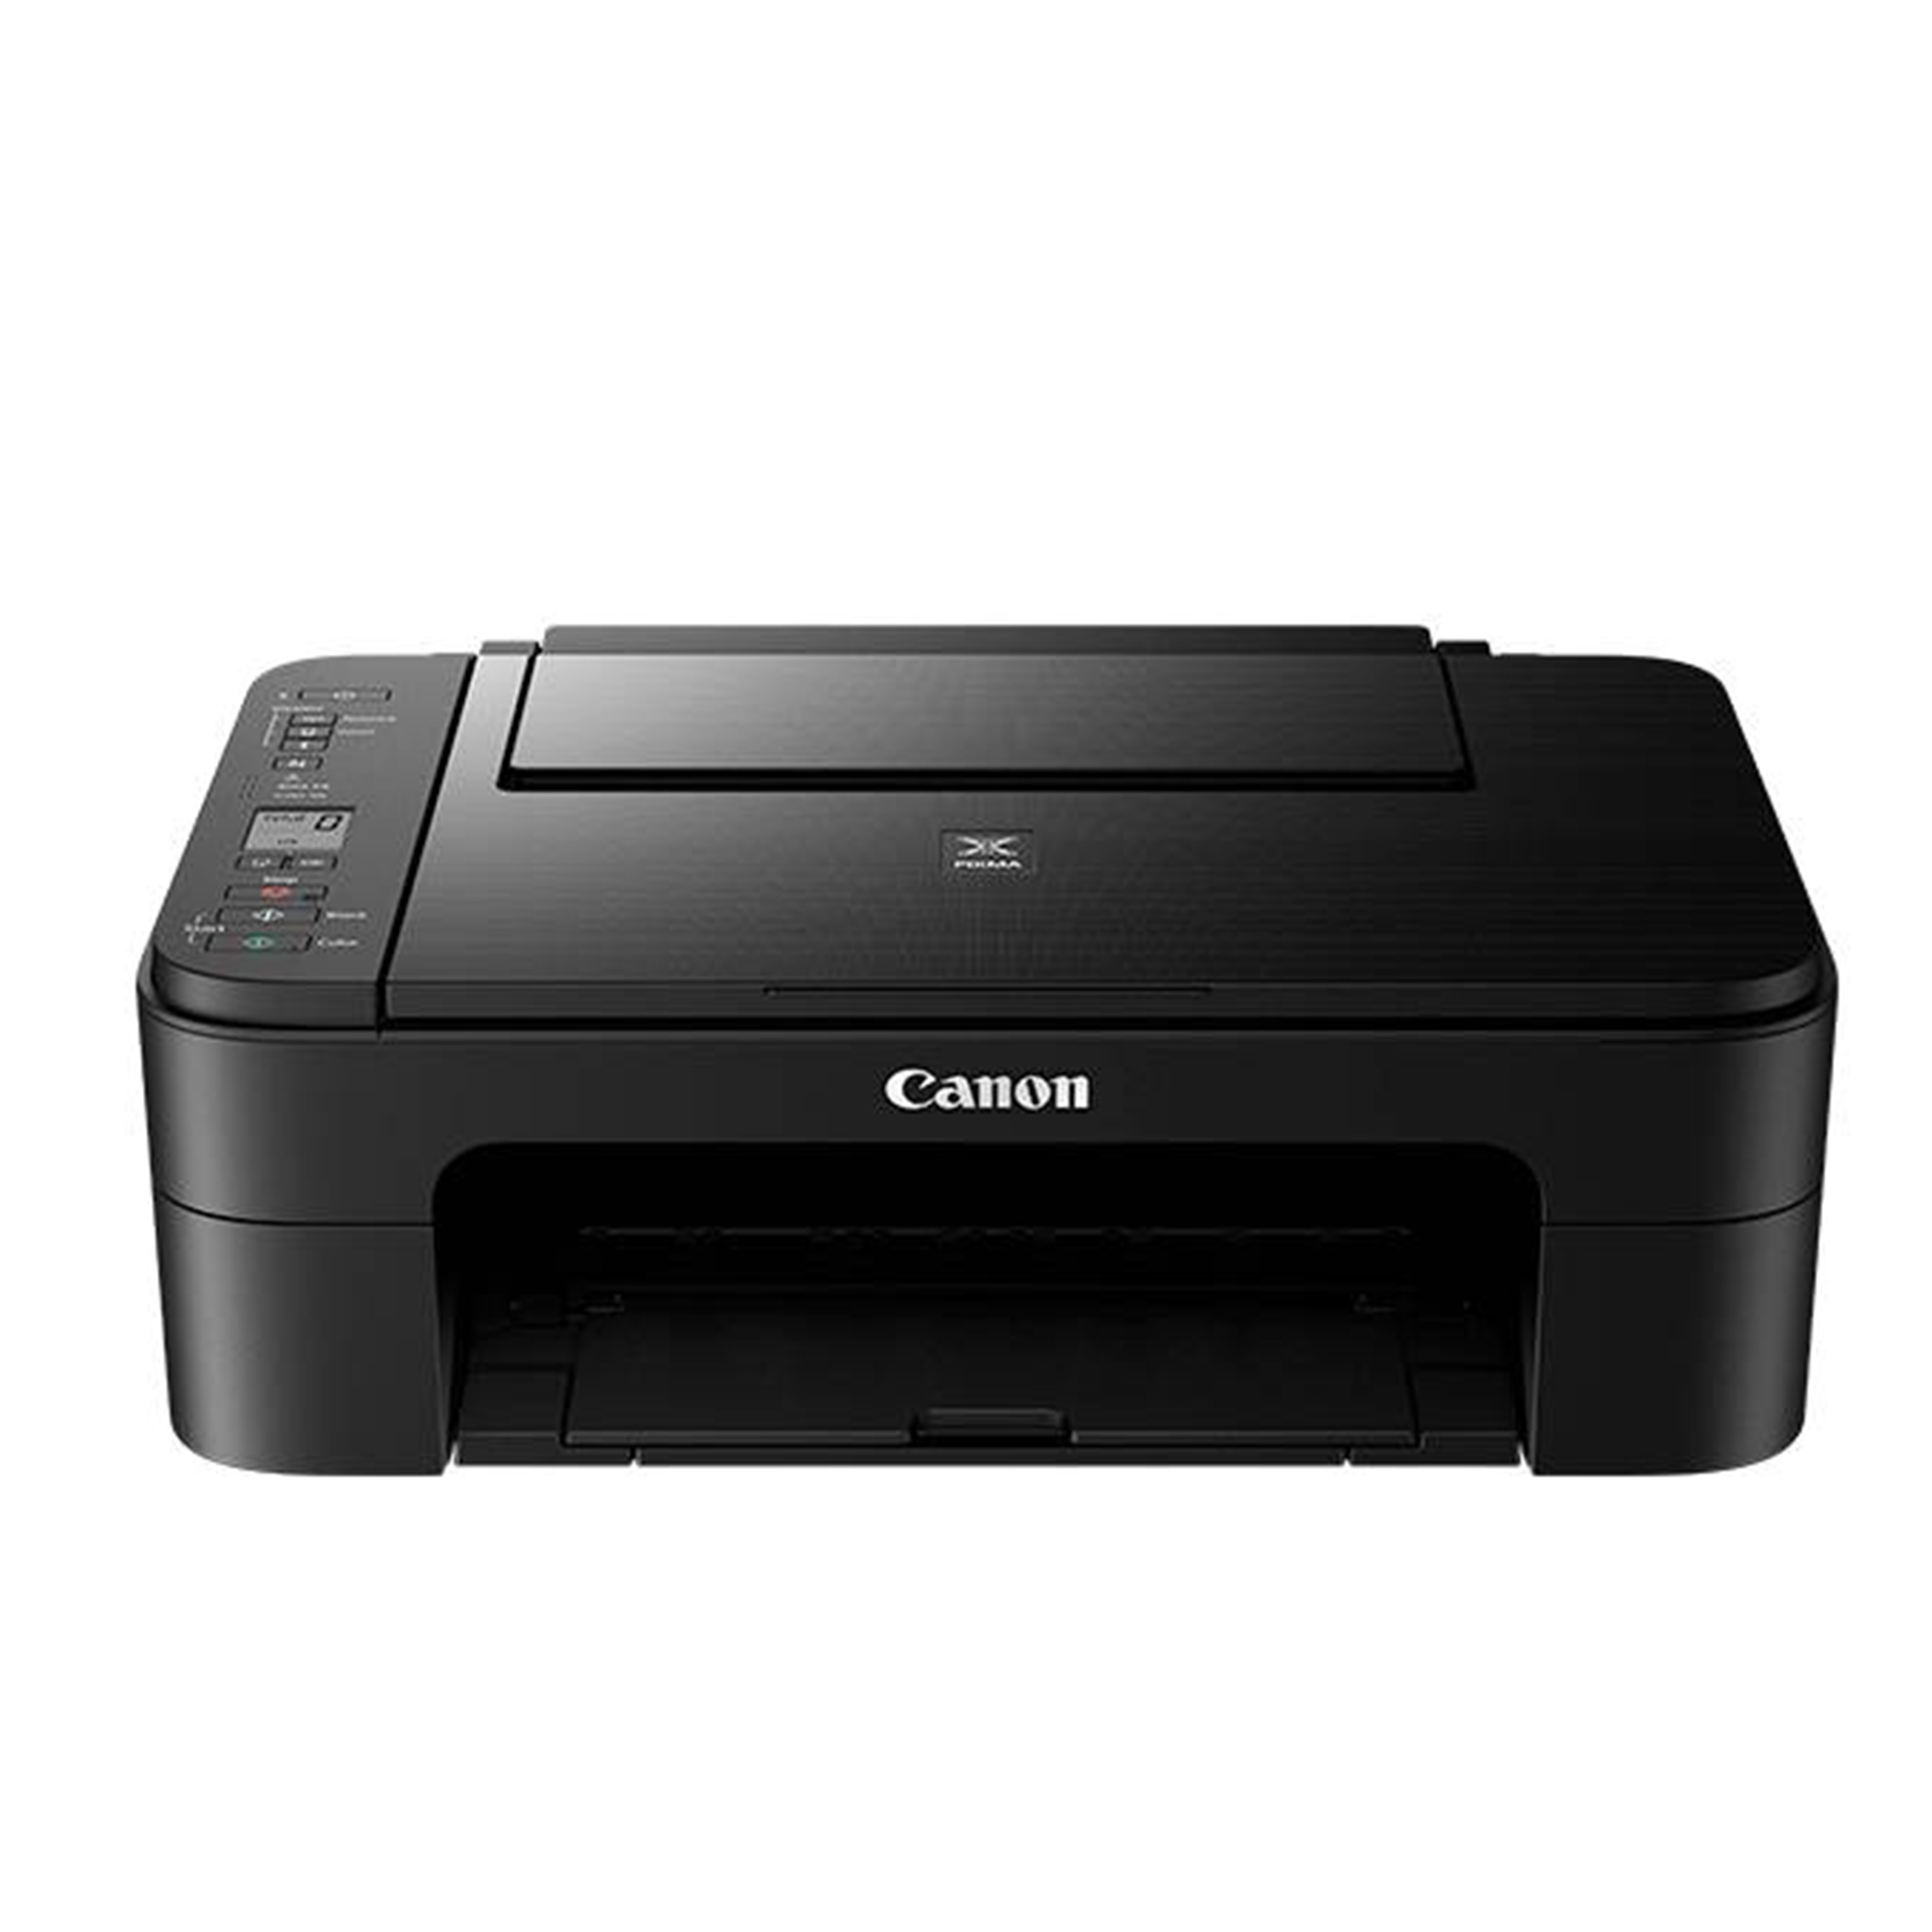 CANON PIXMA TS3140 Printer + A4 COPY PAPER FREE GIFT